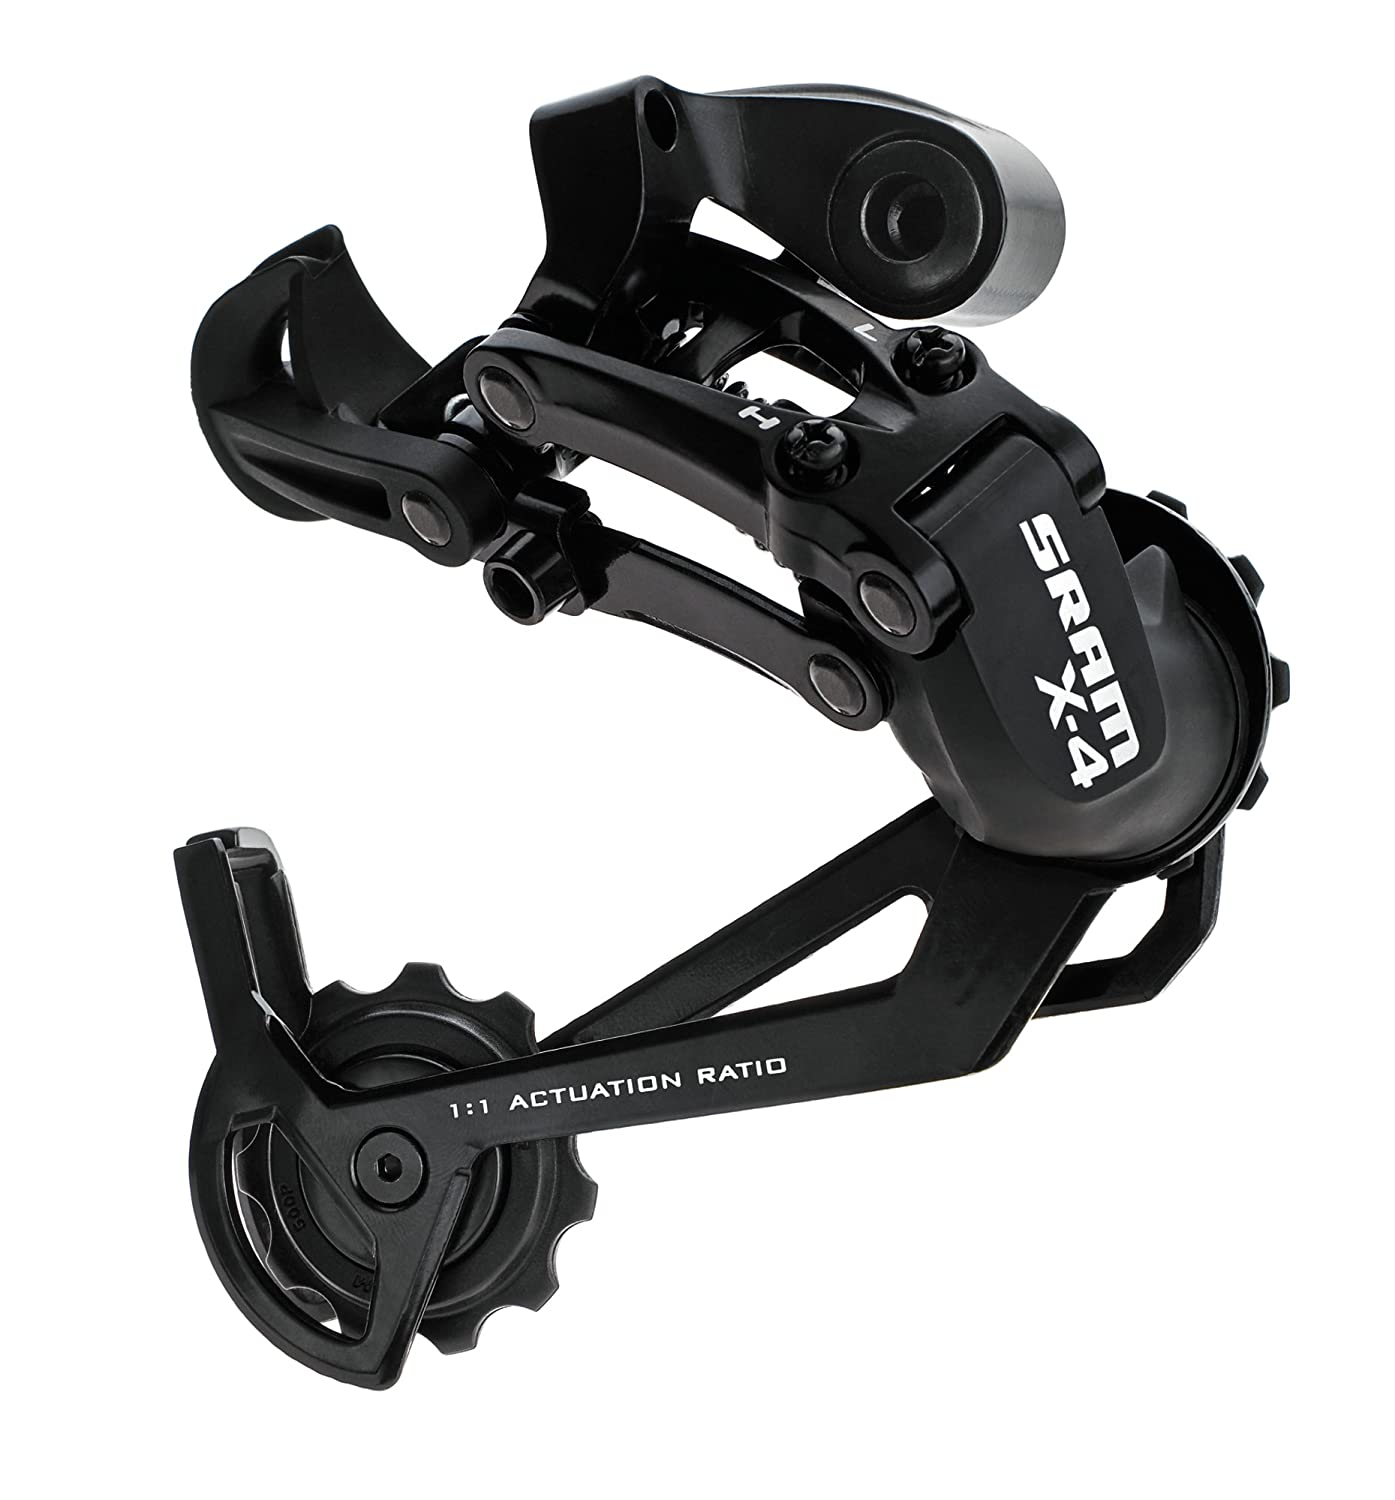 SRAM X.4 Rear Derailleur, Black, Long Cage 141970